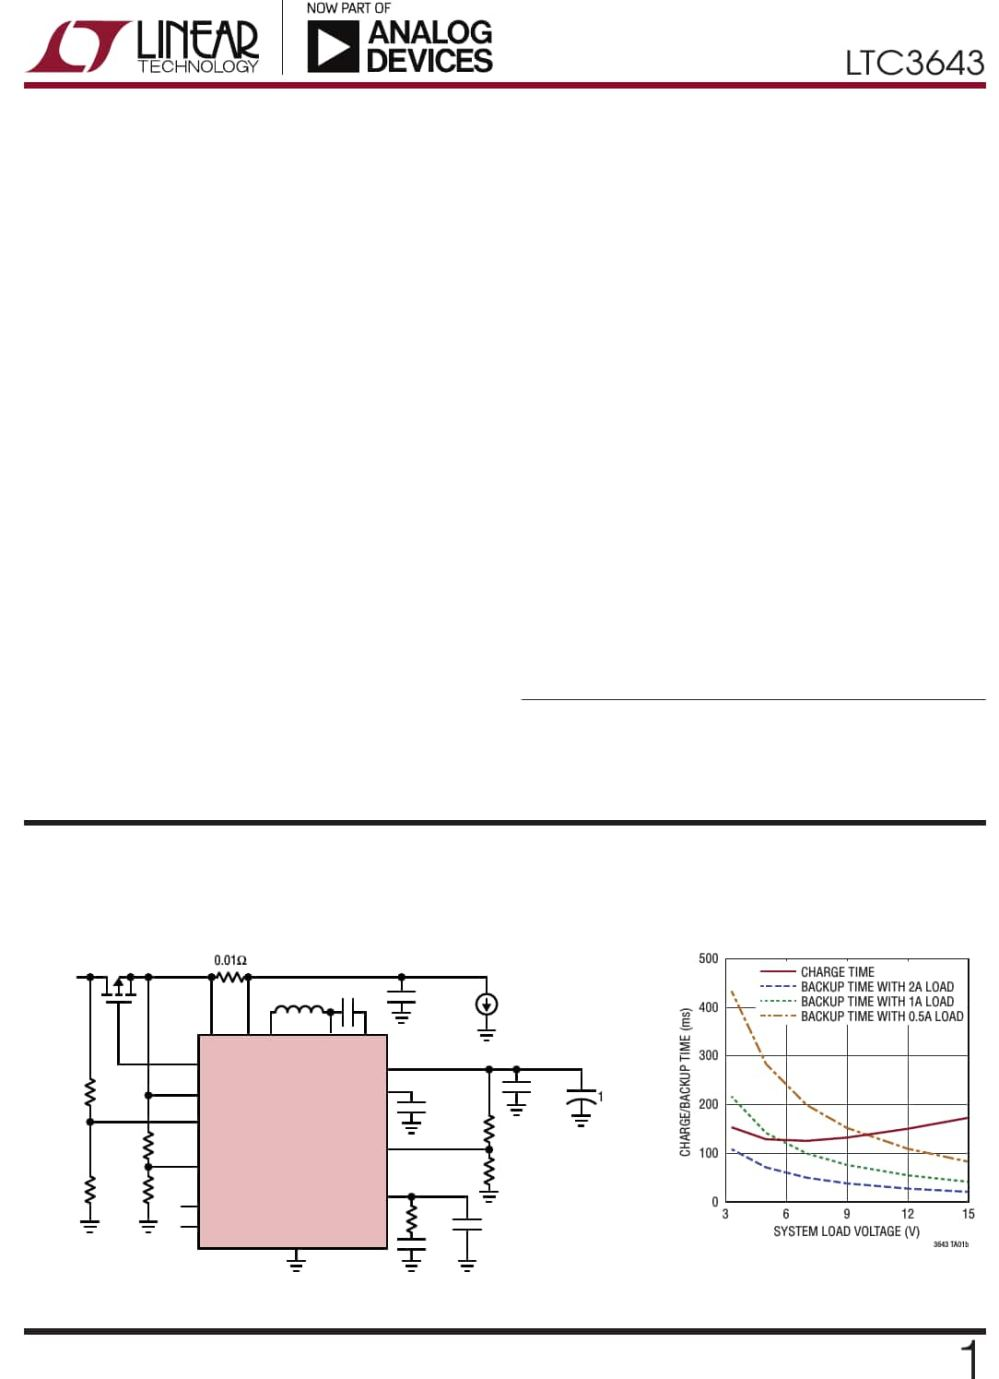 medium resolution of ltc3643 datasheet linear tech analog devices digikey hose furthermore condenser microphone diagram as well 24v relay coil